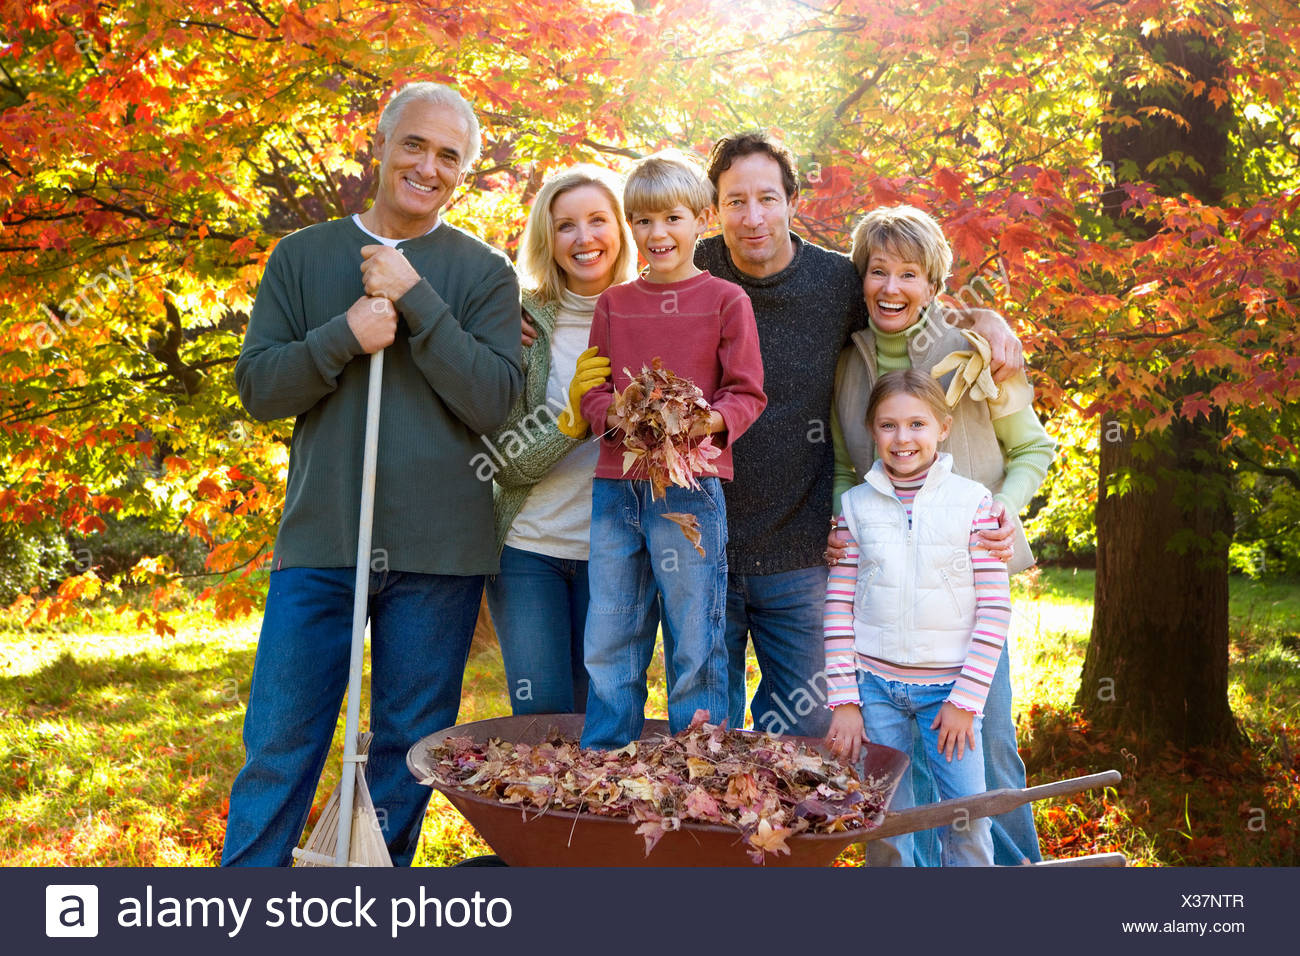 Three generation family doing yard work together in autumn - Stock Image